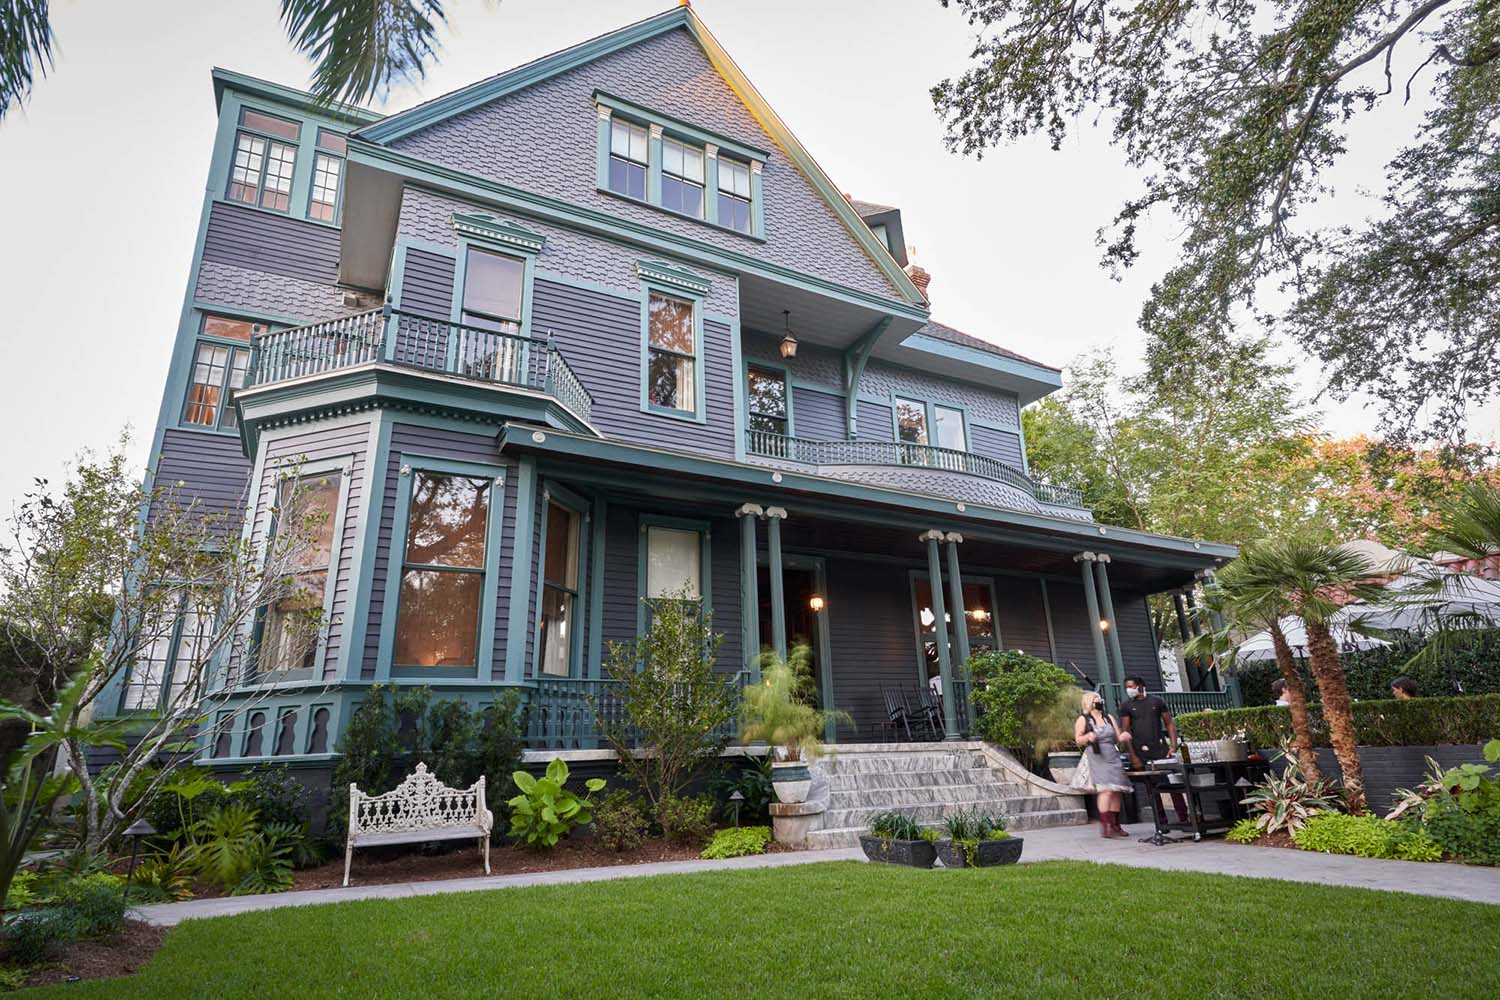 The Chloe New Orleans Design Hotel in the Garden District by Sara Ruffin Costello